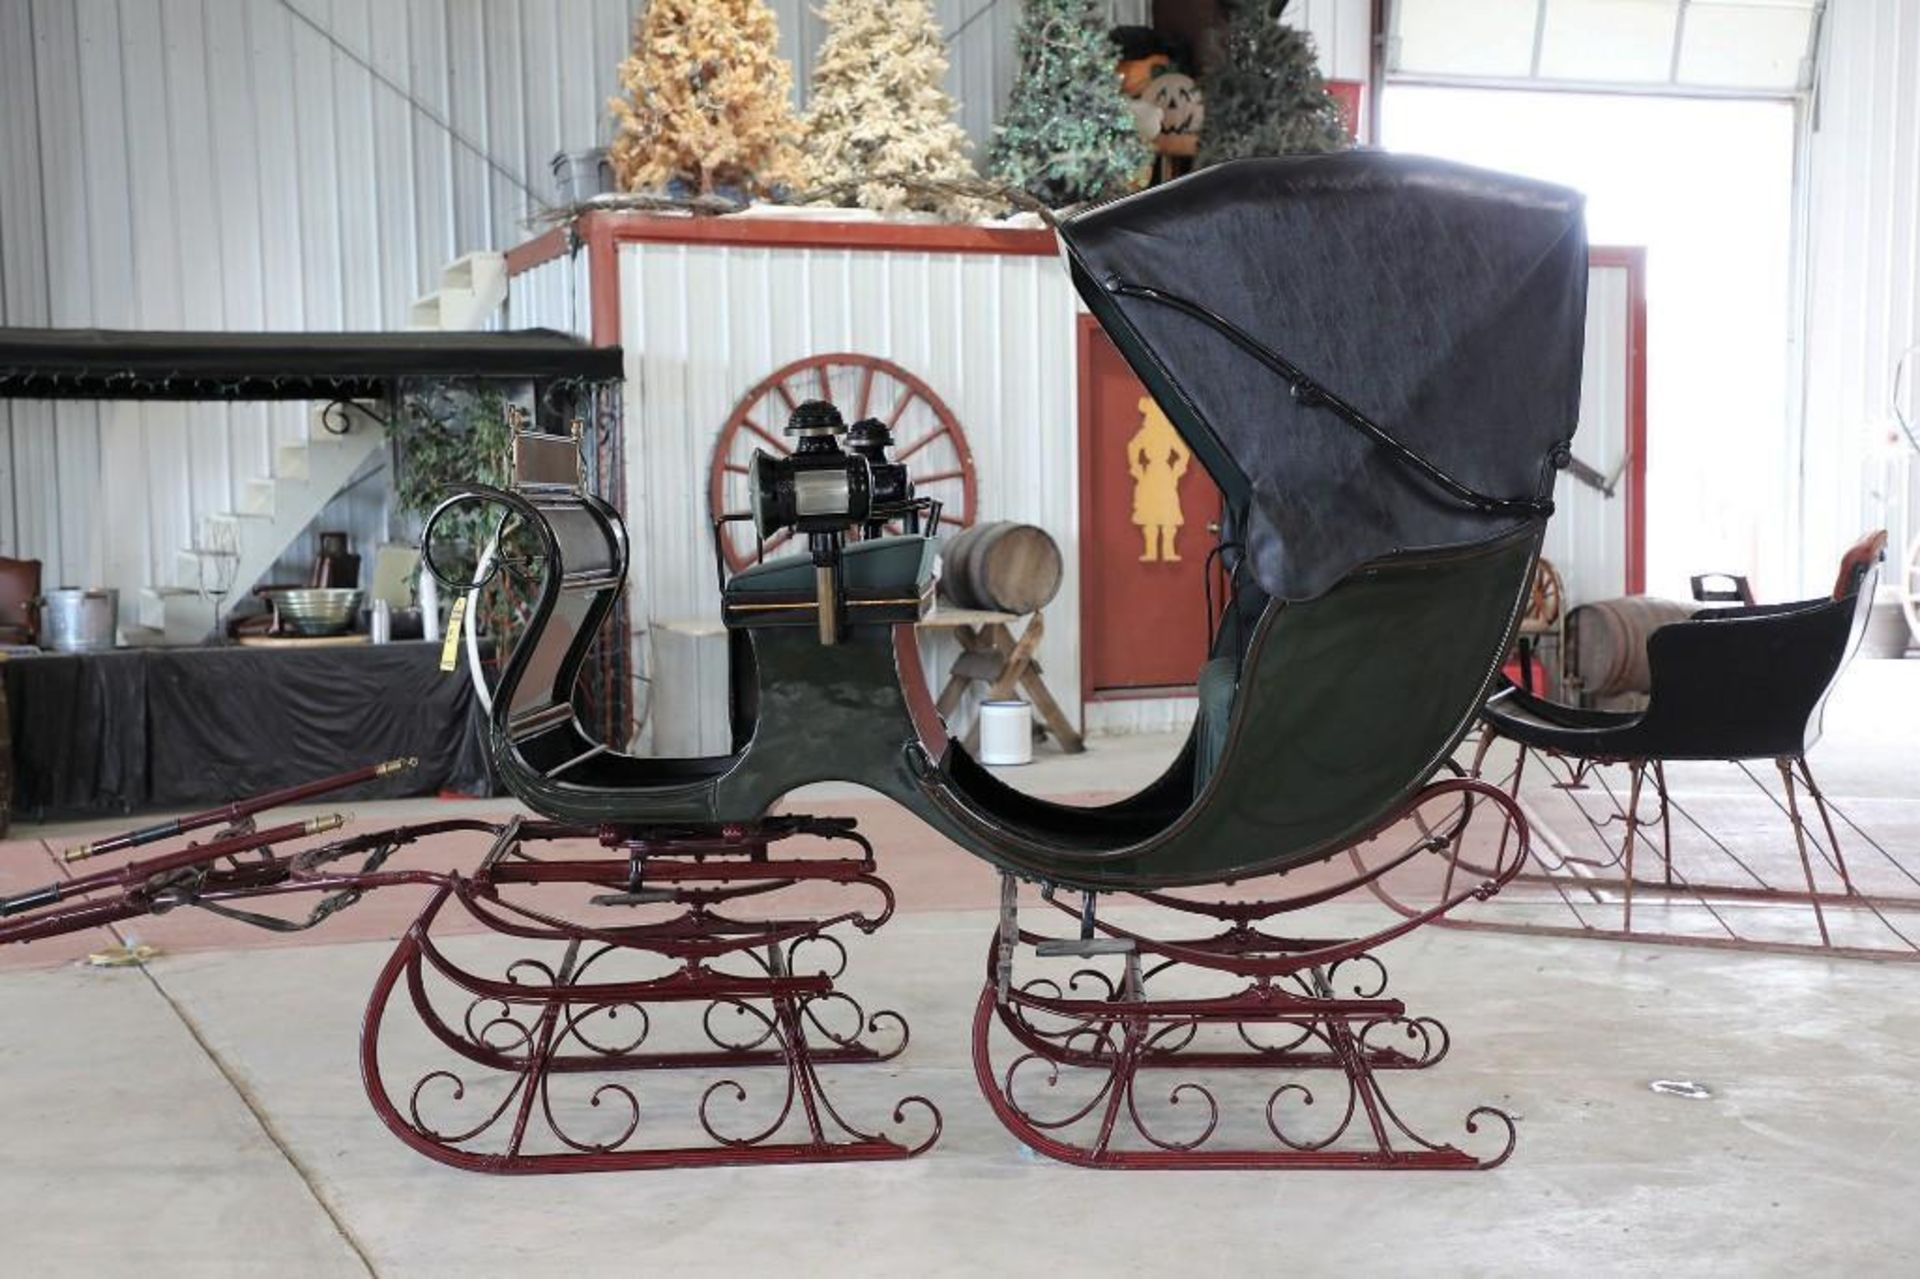 Autotop Sleigh, Made in Troy, NY. Lamps will sell separate - Image 3 of 4